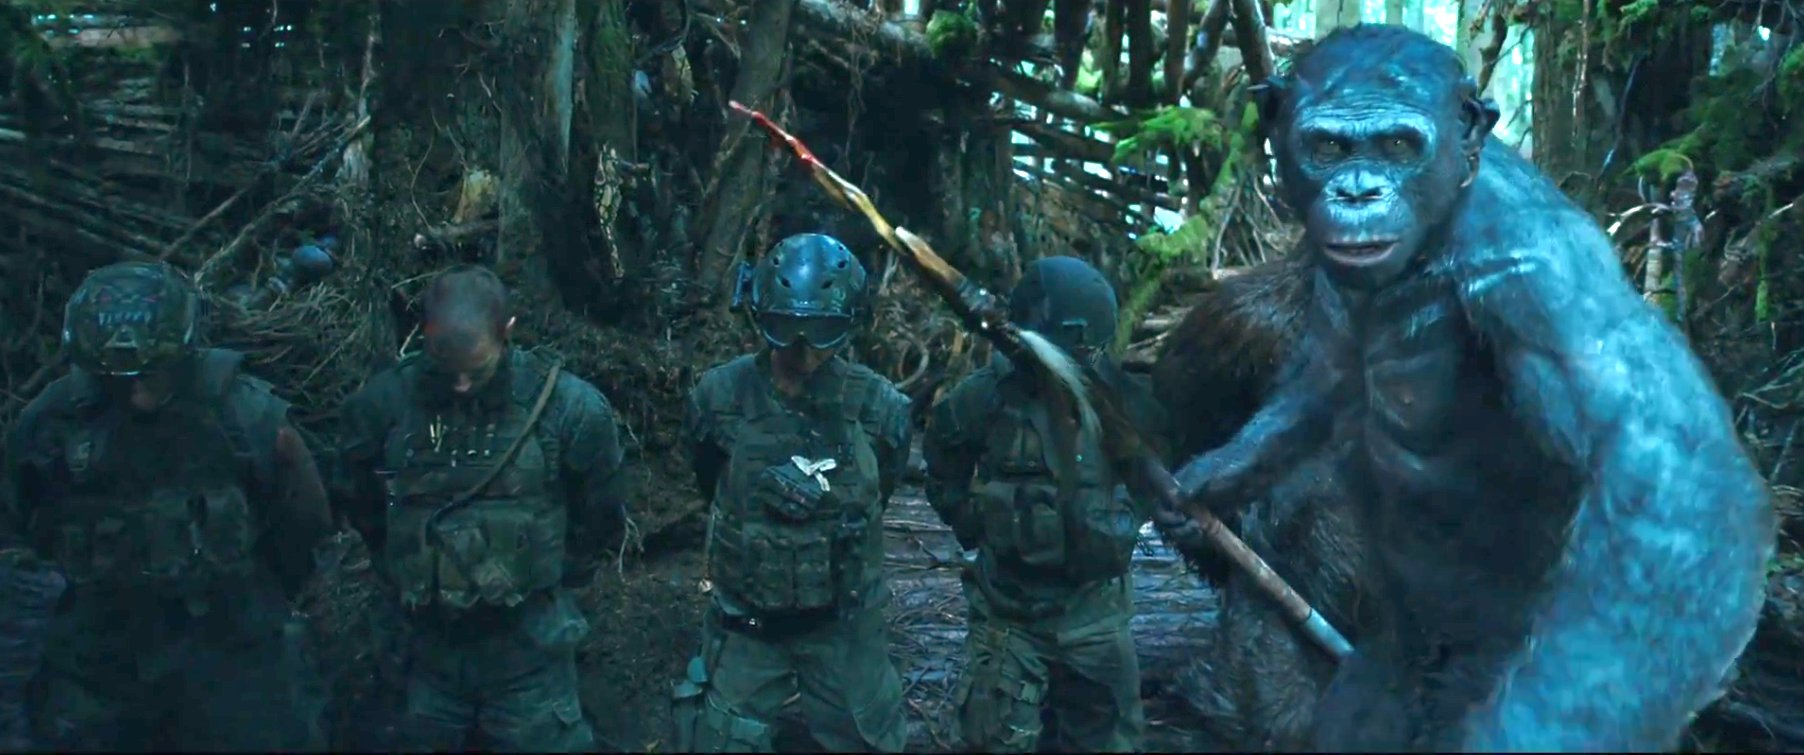 New War for the Planet of the Apes Trailer Revealed